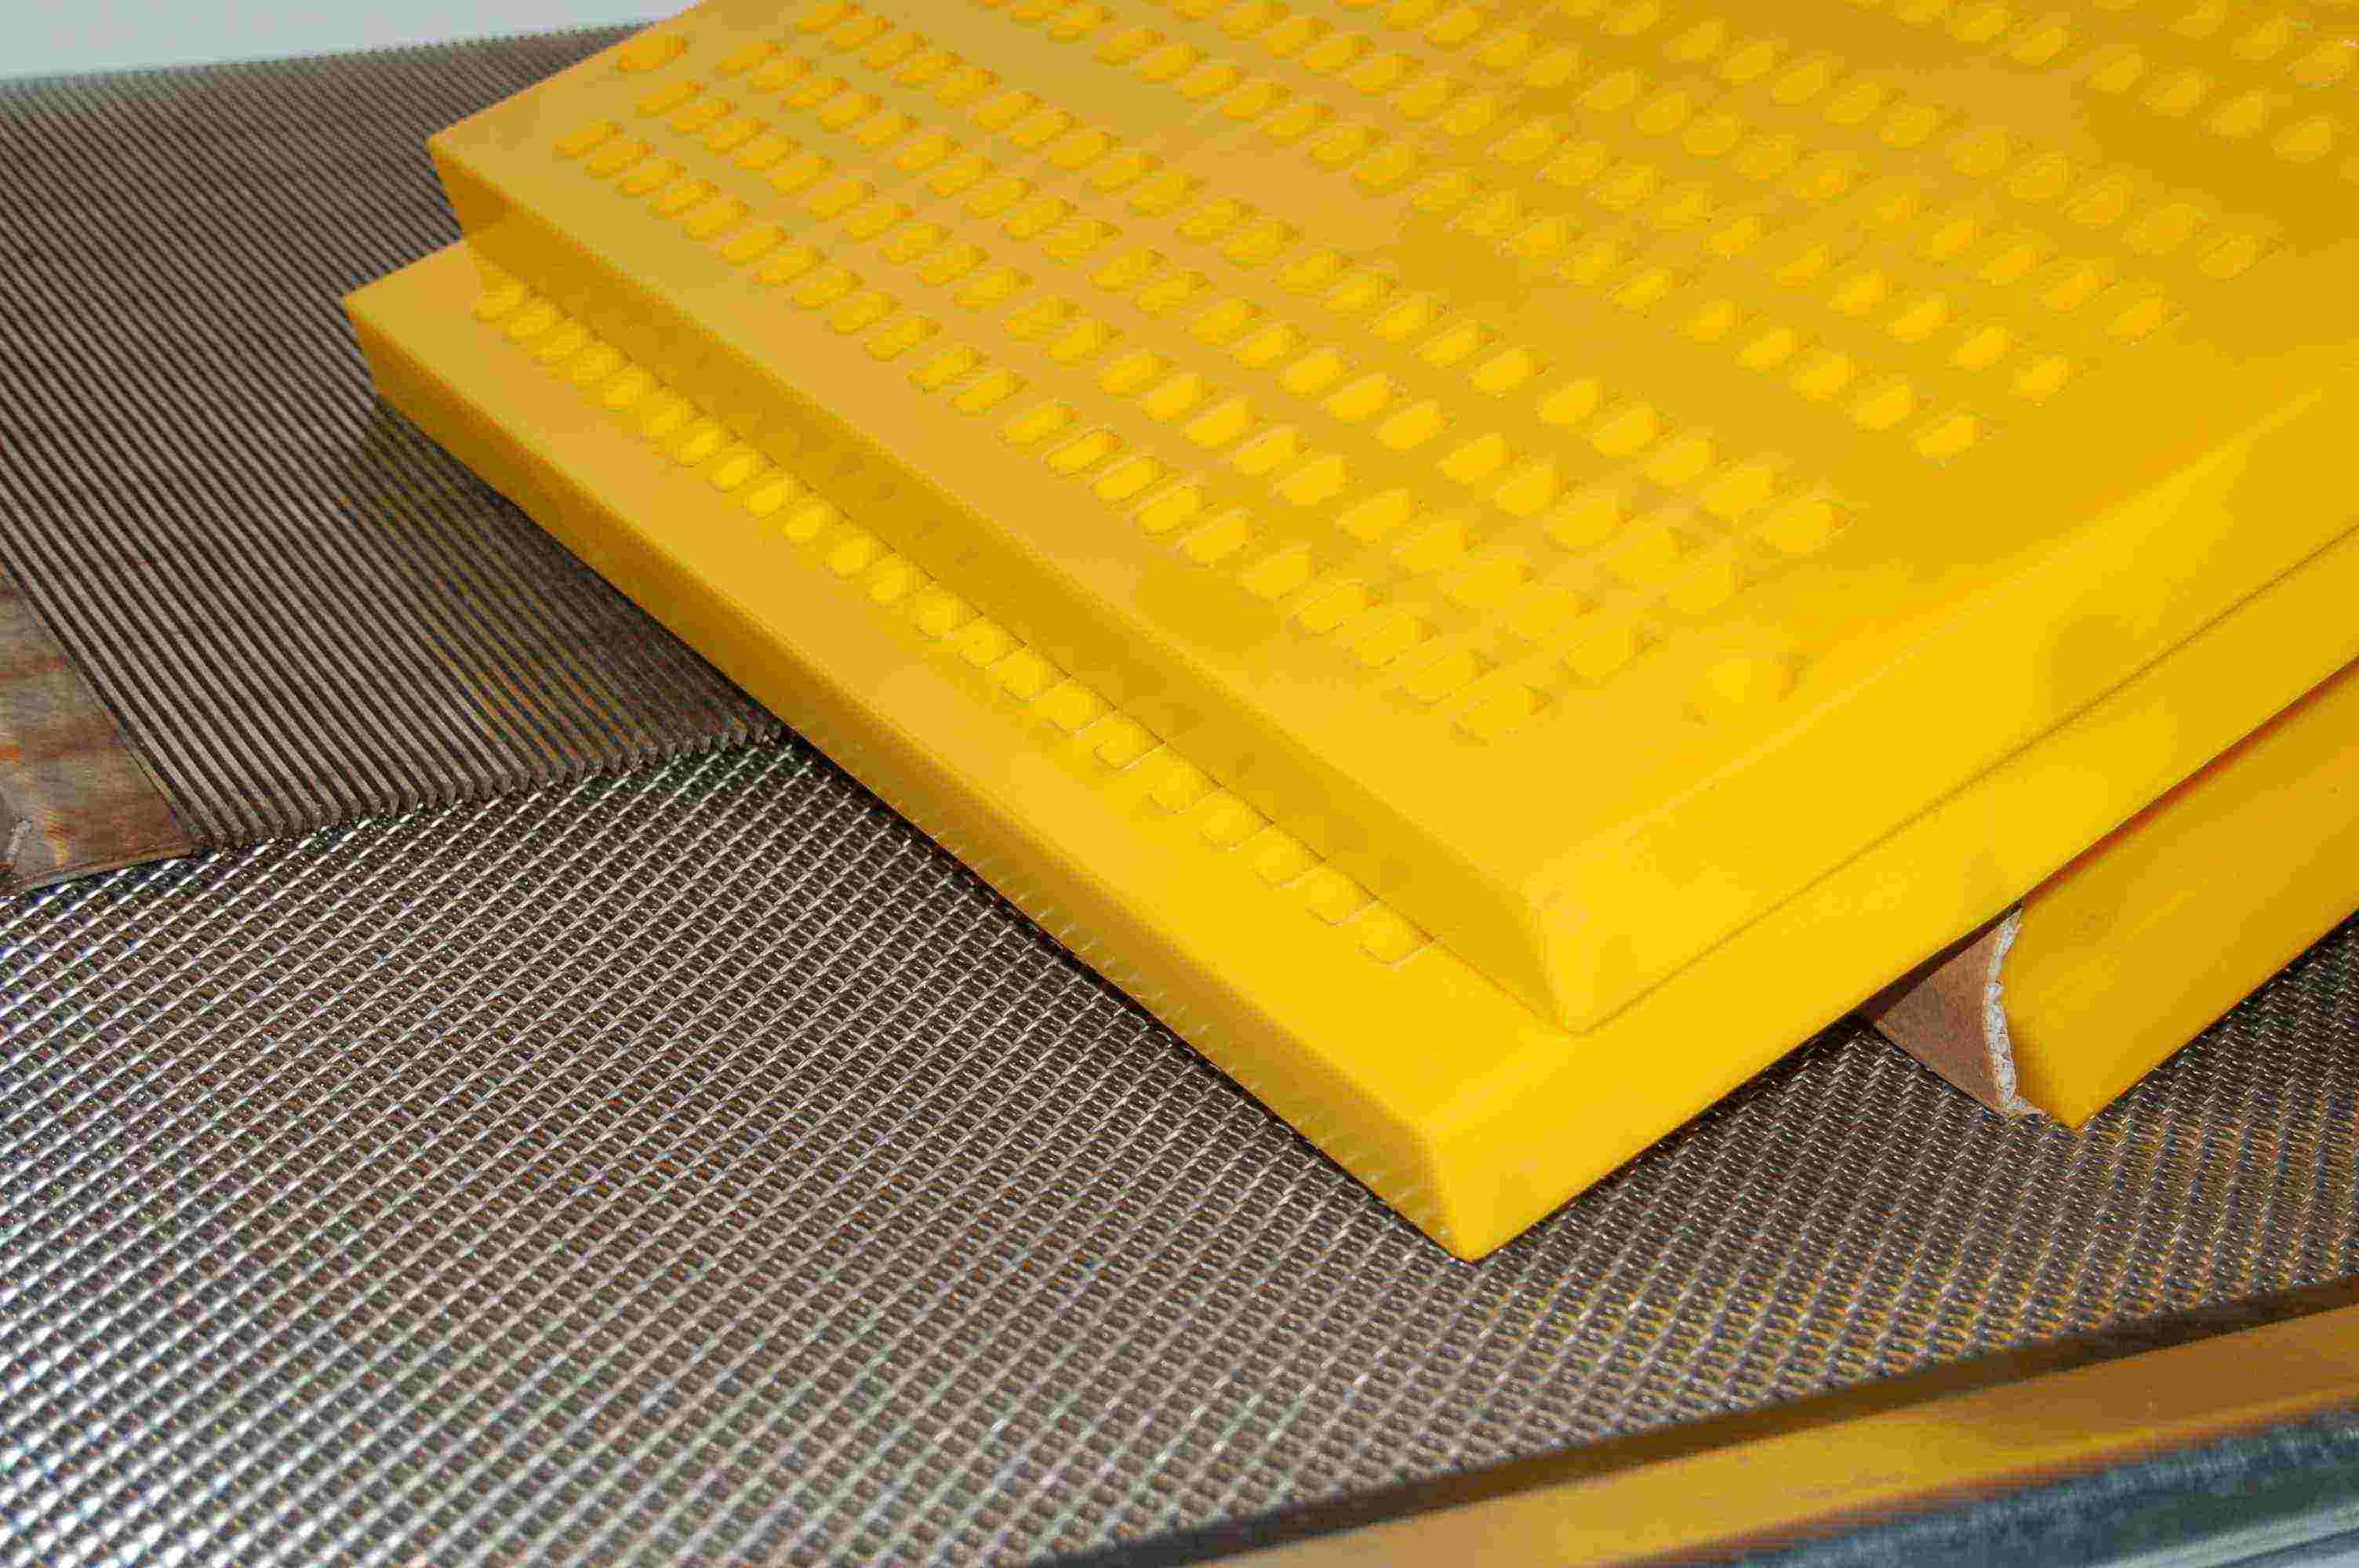 Wovenwire, wedgewire & polyurethane screens